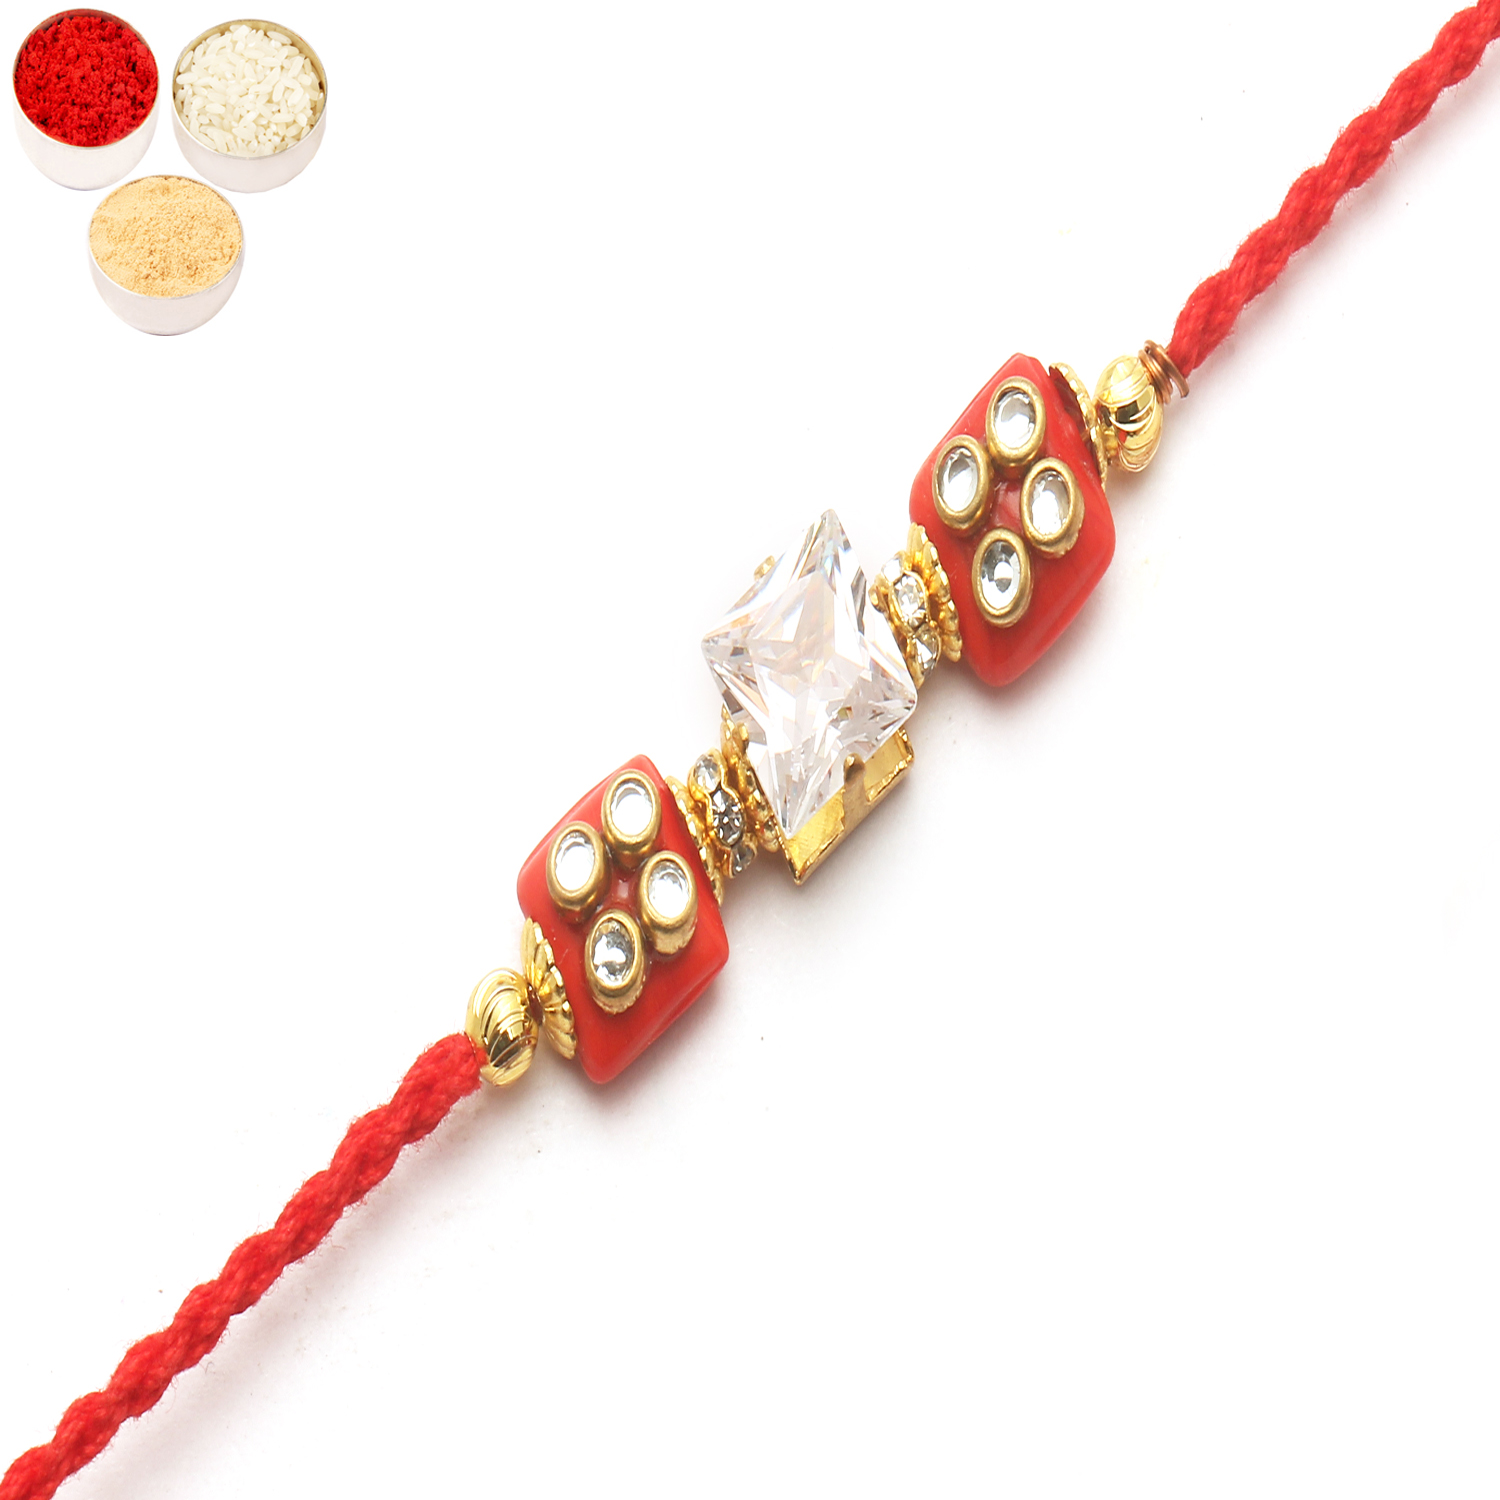 d209 Diamond Rakhi